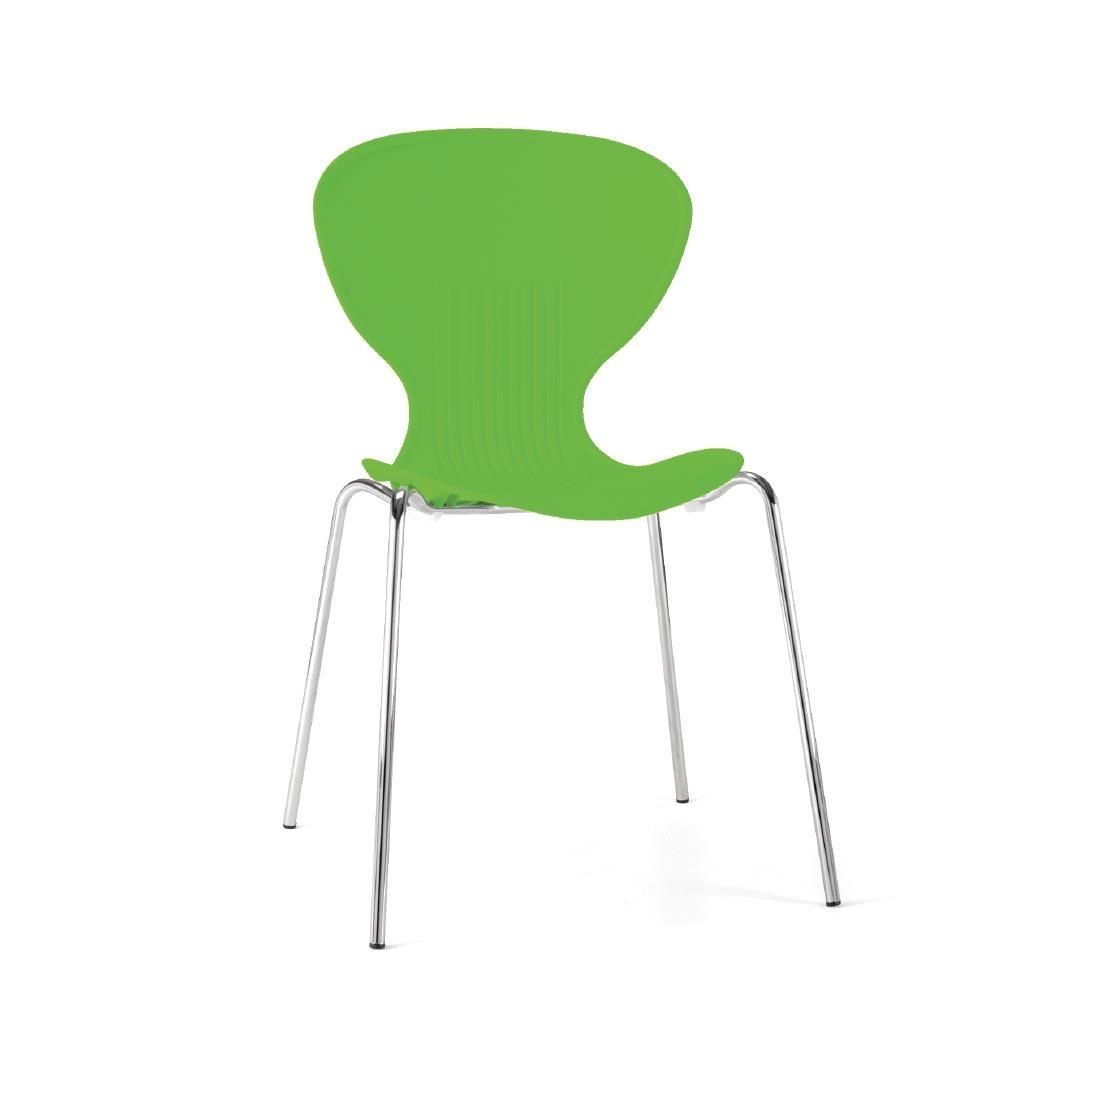 GP503 - Bolero Lime Stacking Plastic Side Chairs - Case of 4 - GP503